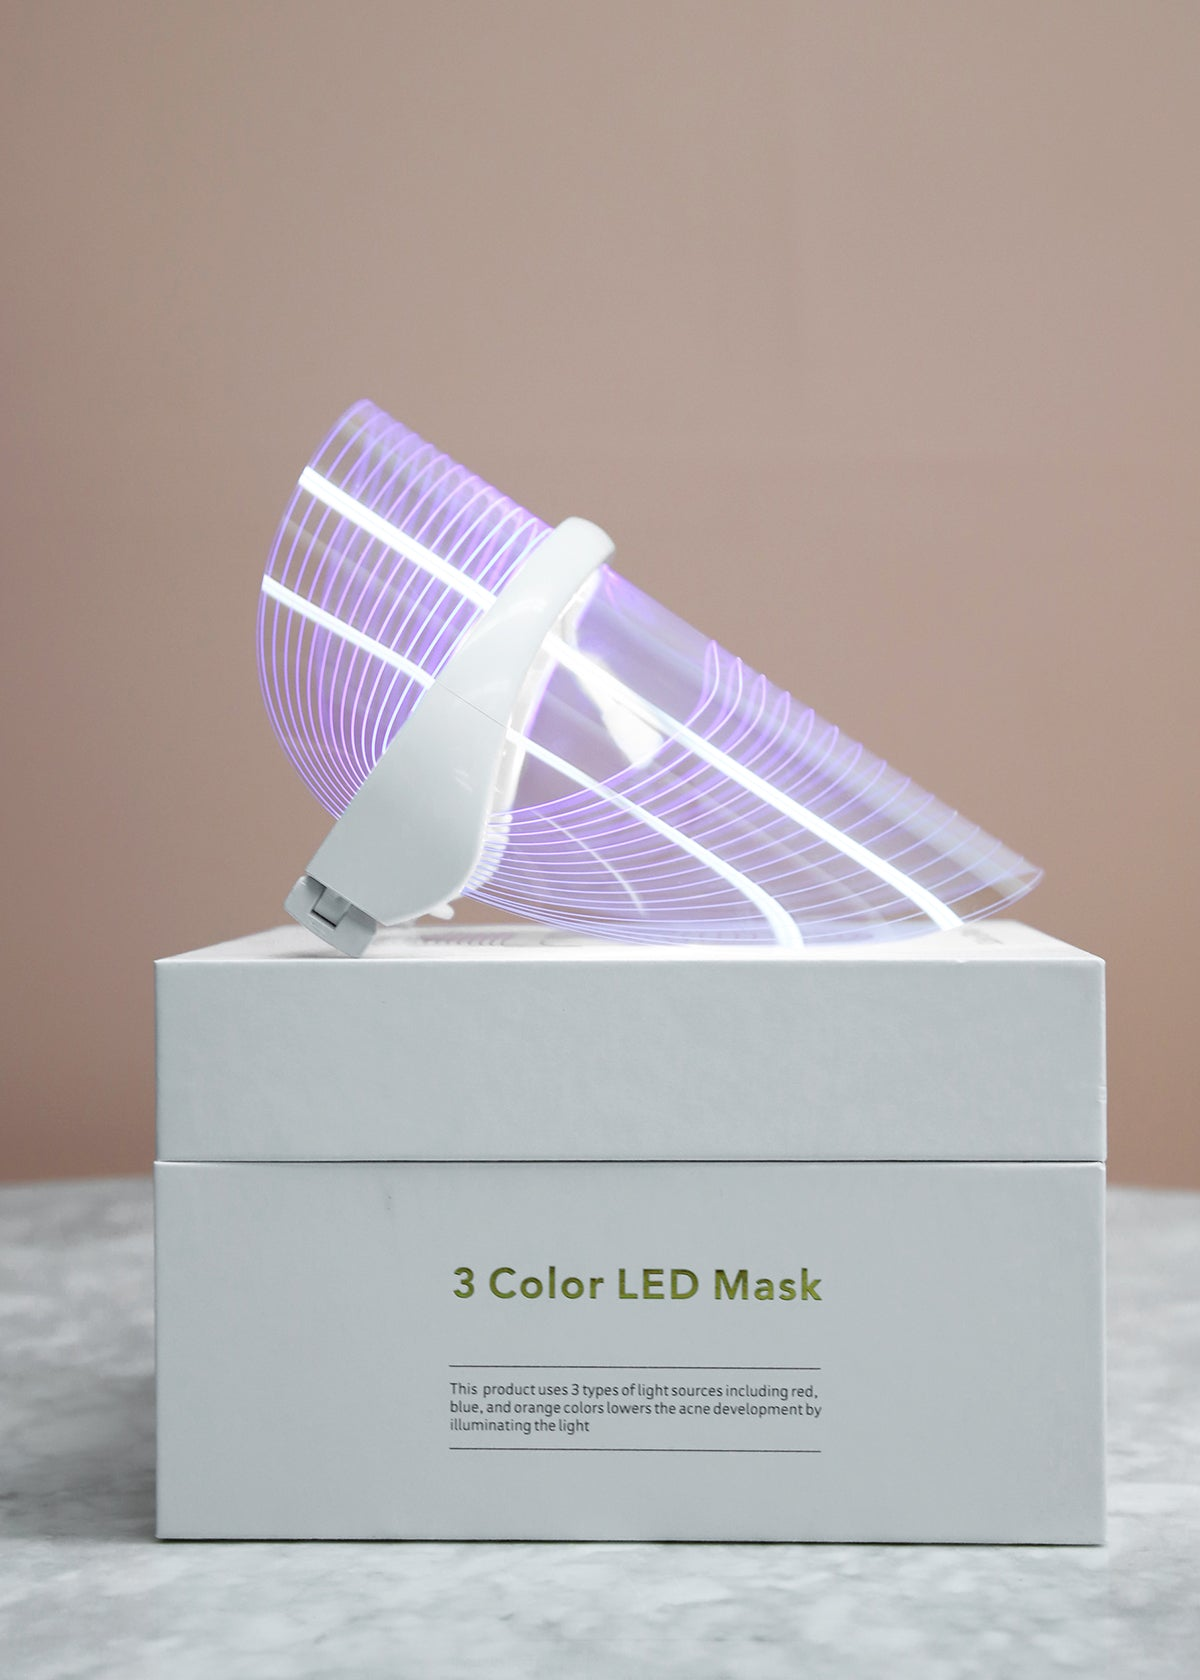 The SOL Light Therapy Mask blue LED light attacks acne-causing bacteria, helping to prevent and and heal breakouts as they occur.